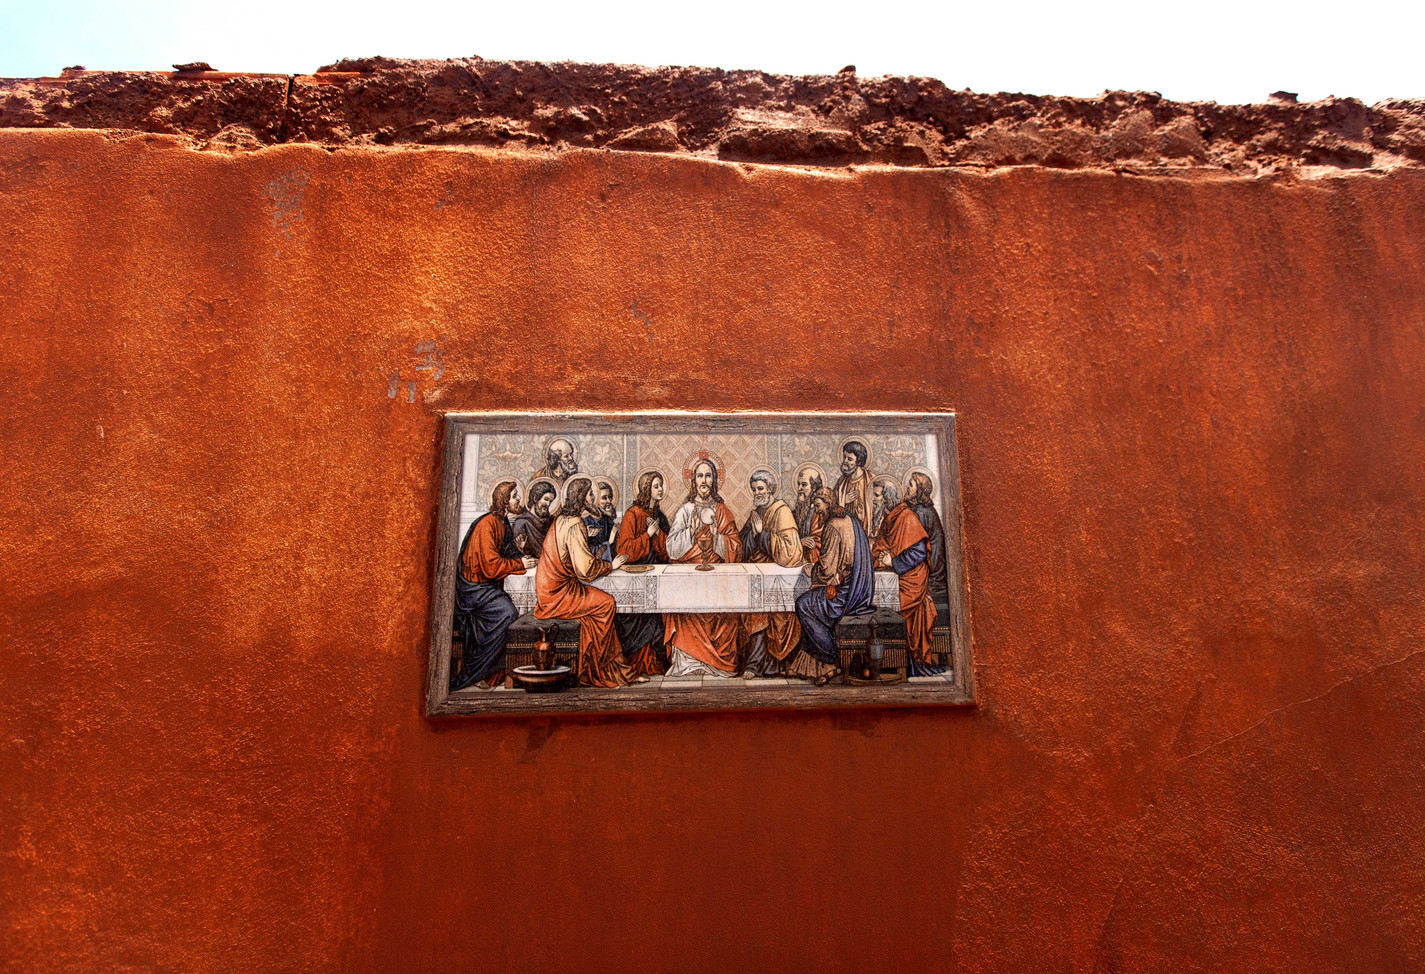 Despite the total destruction of the house, a photo depicting The Last Supper remains intact. From Bento Rodrigues, Minas Gerais, BR.